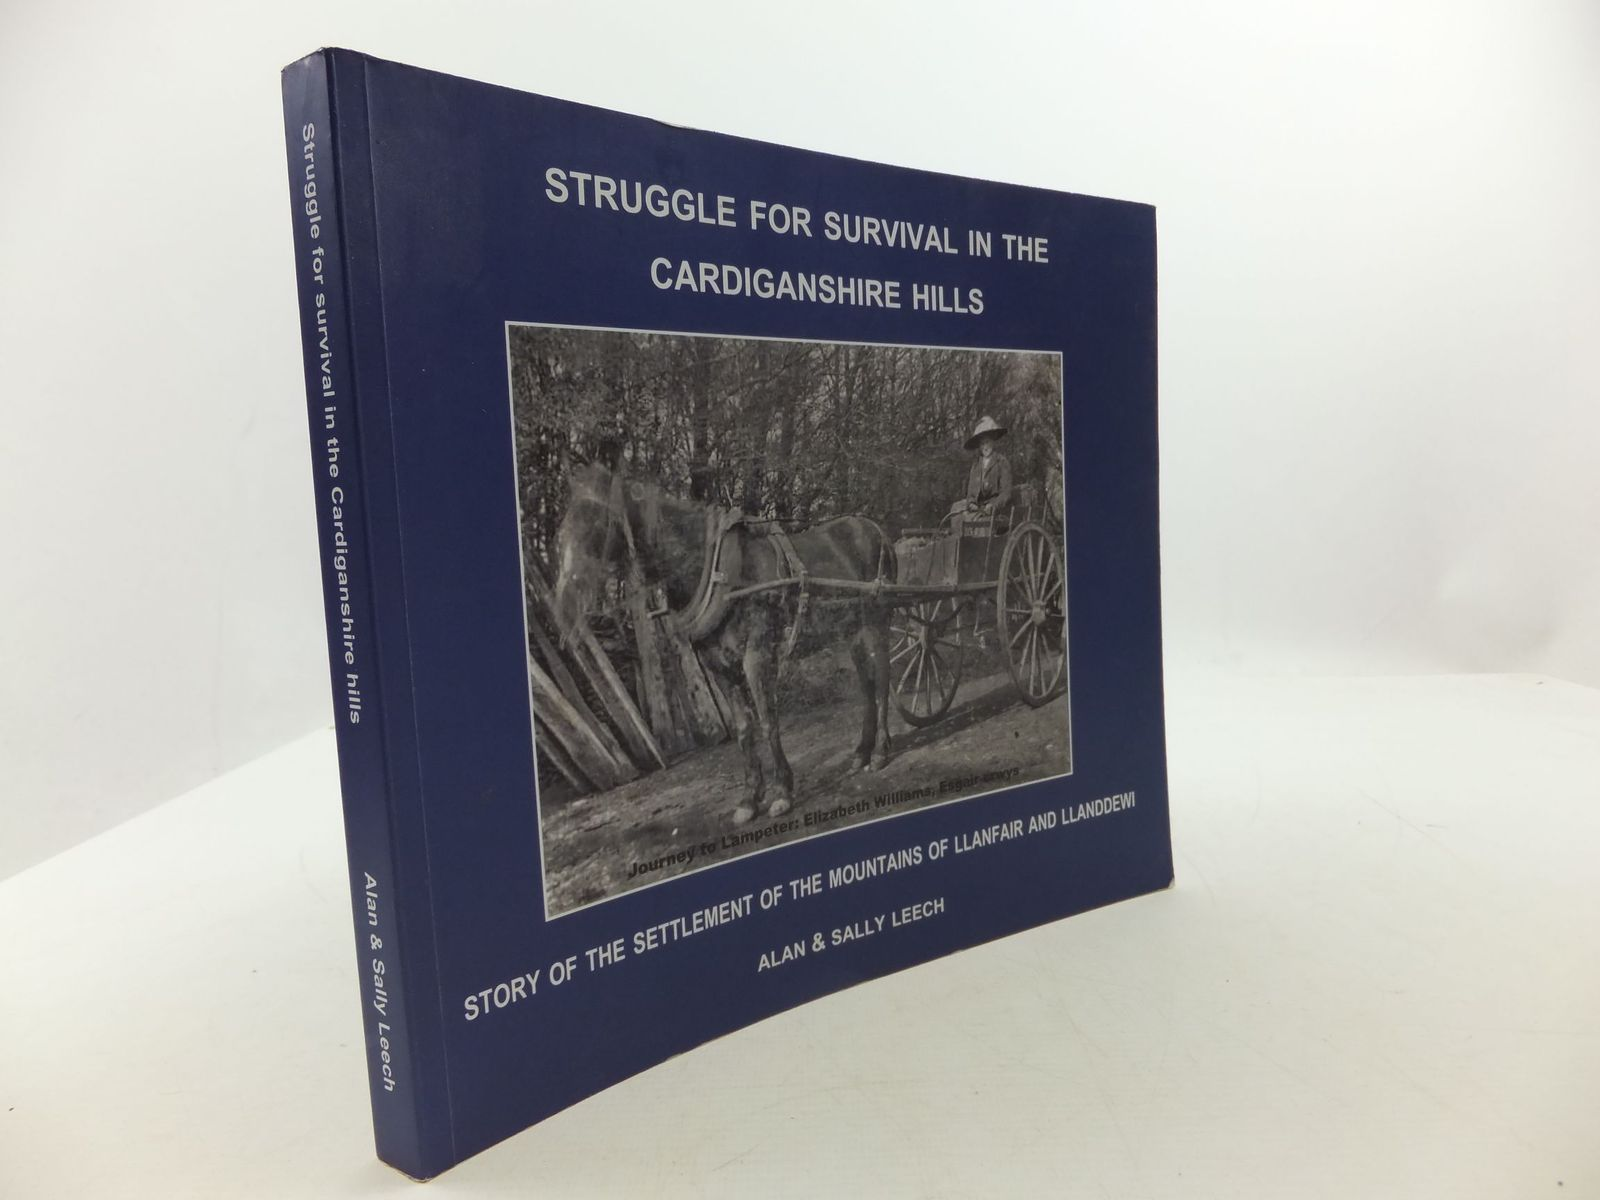 Photo of STRUGGLE FOR SURVIVAL IN THE CARDIGANSHIRE HILLS written by Leech, Alan<br />Leech, Sally published by Alan Leech (STOCK CODE: 1708383)  for sale by Stella & Rose's Books